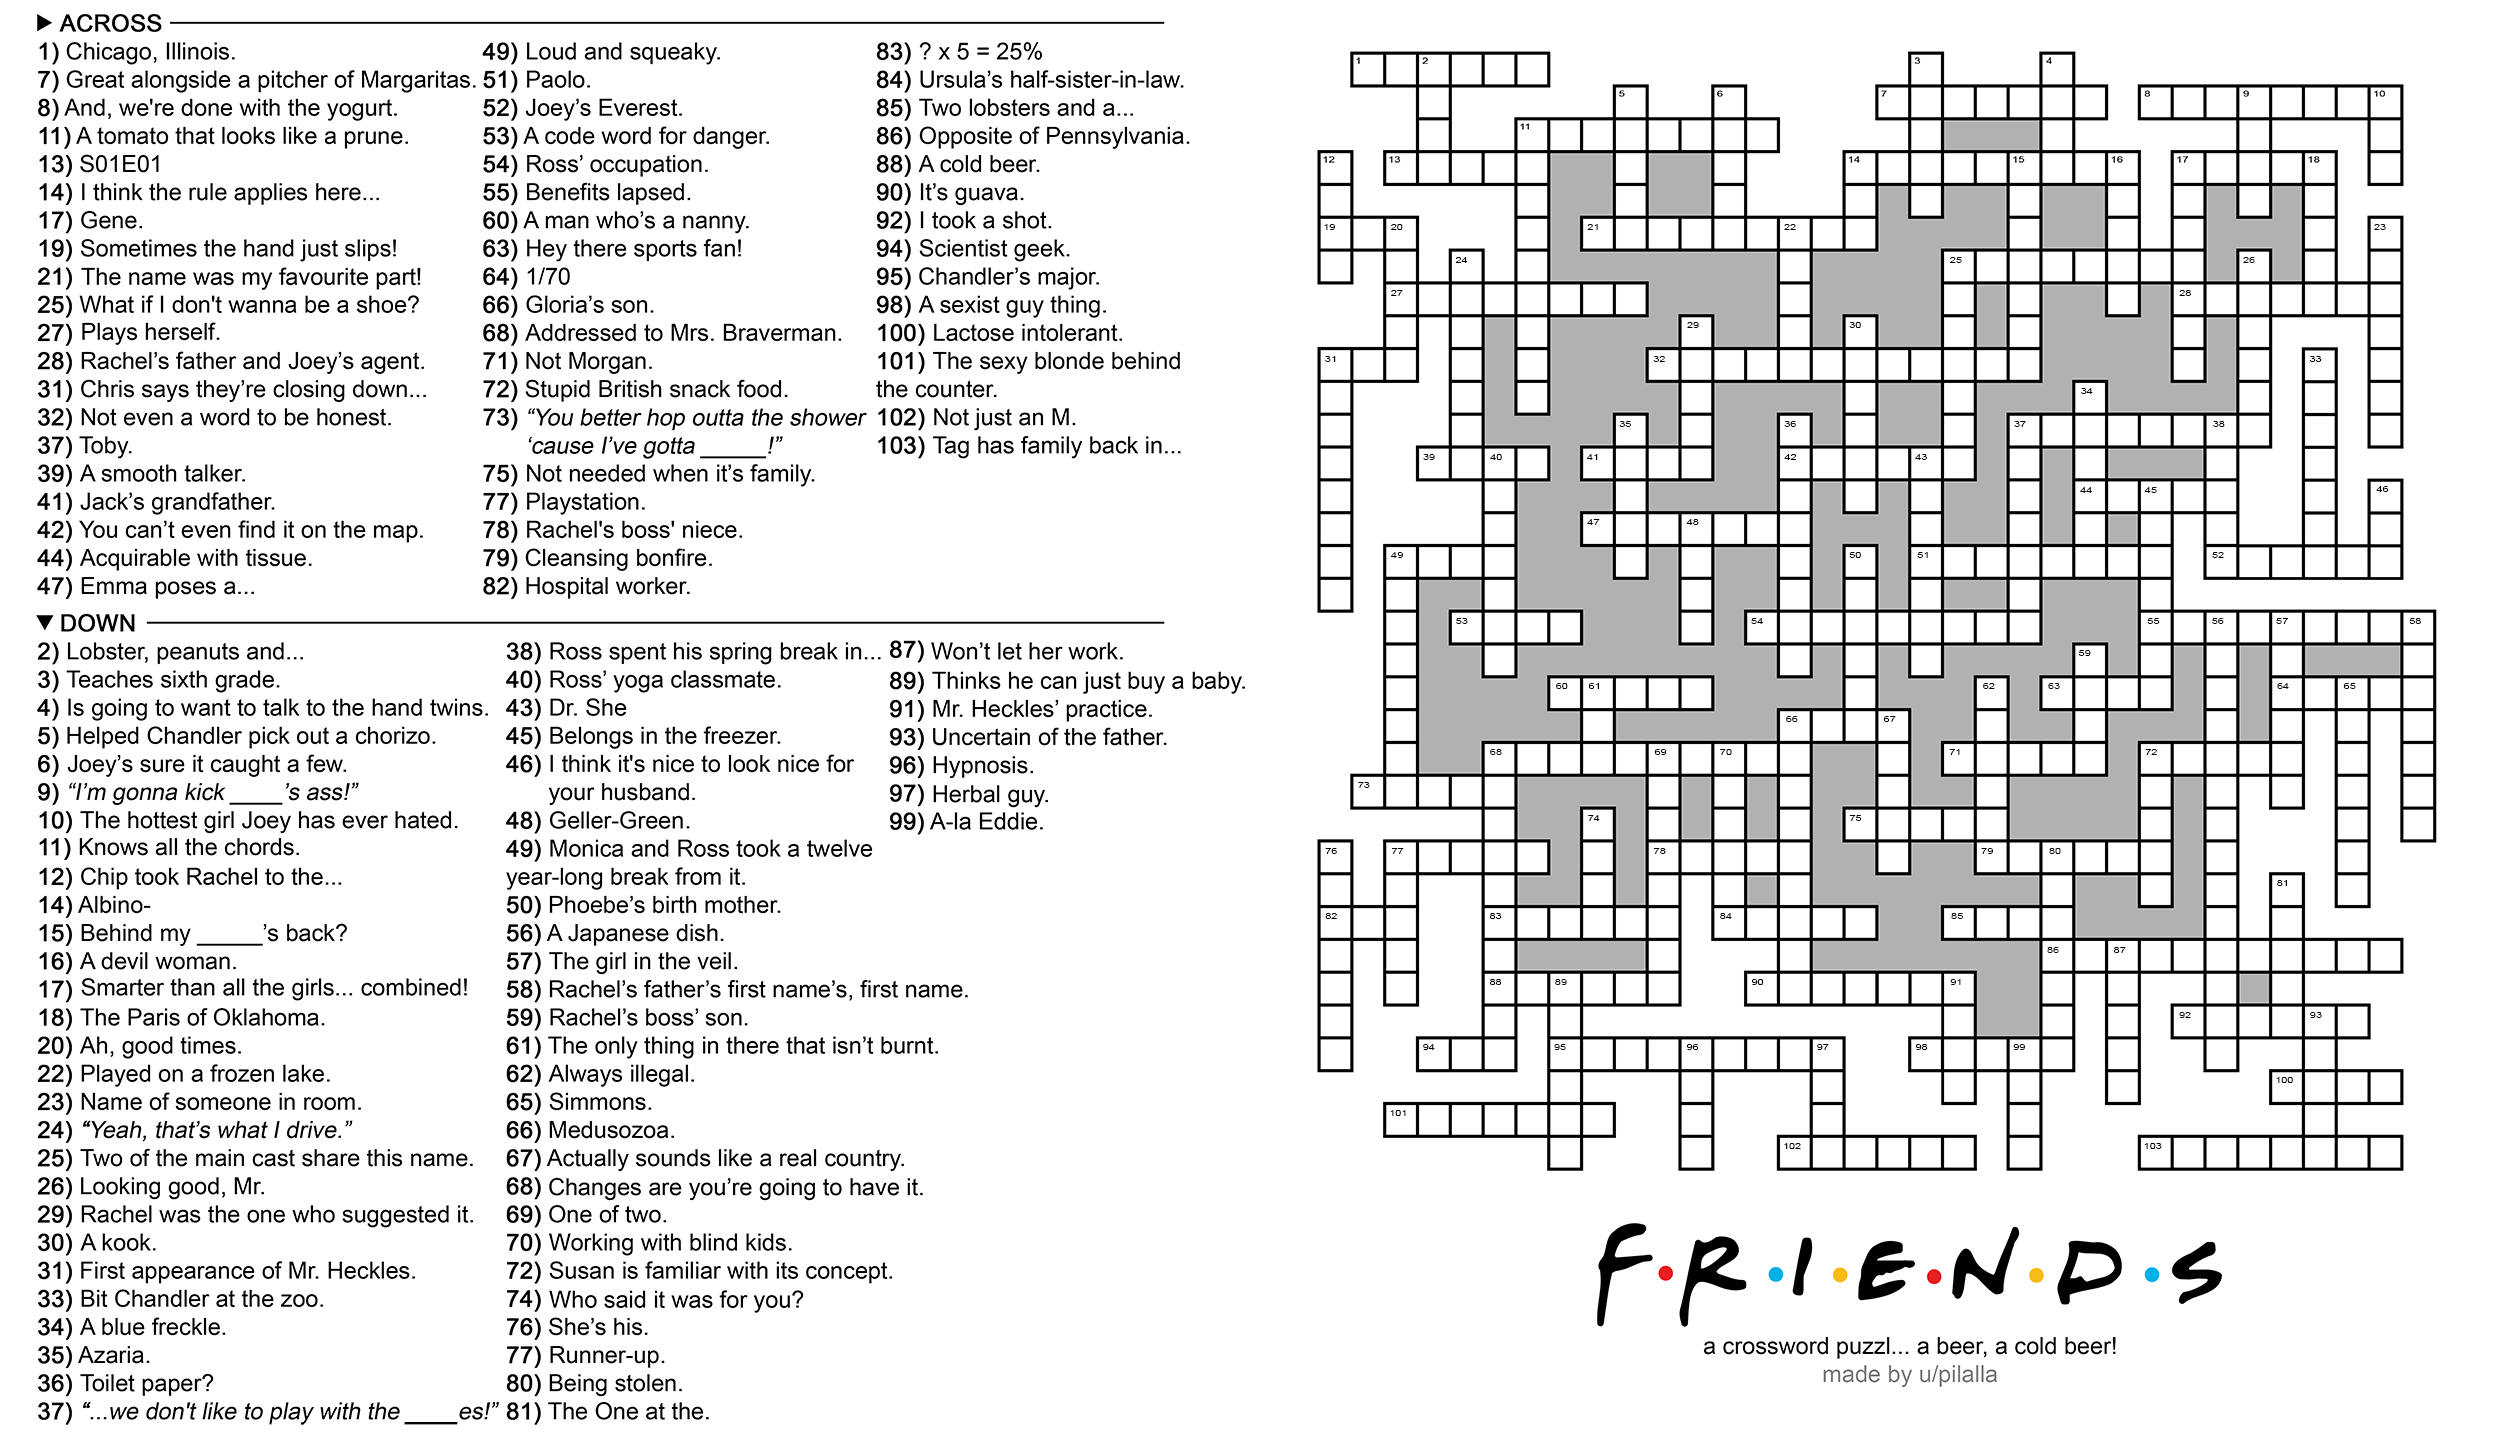 104 Word 'friends' Themed Crossword Puzzle : Howyoudoin - Friends Crossword Puzzle Printable